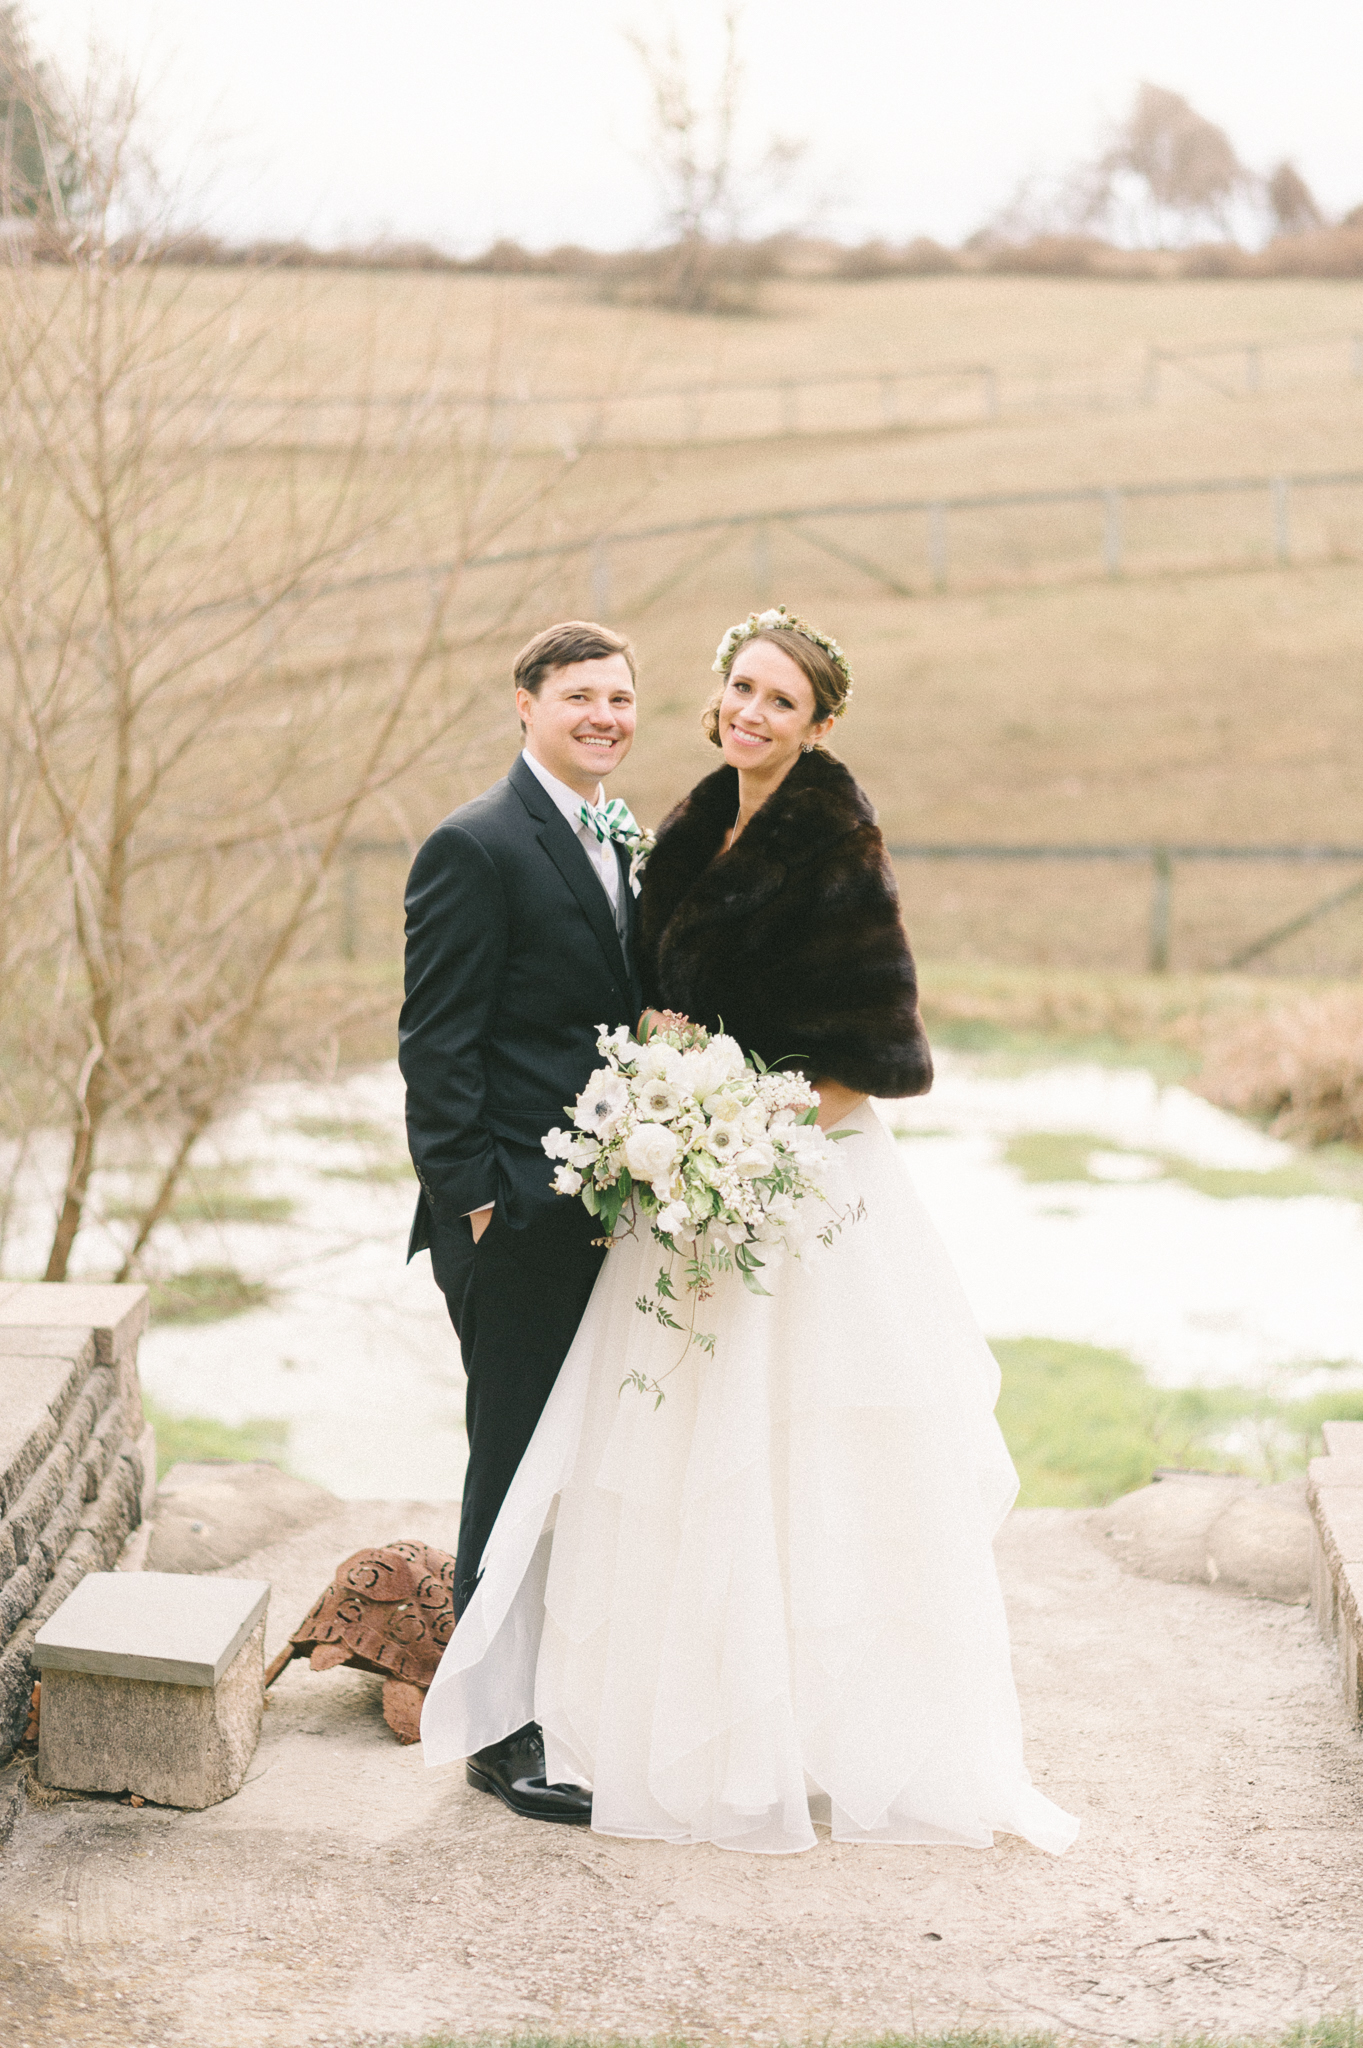 Baltimore new years eve wedding united with love thinking about planning your own festive wedding check out our new years eve inspiration galleries for fun ideas junglespirit Gallery